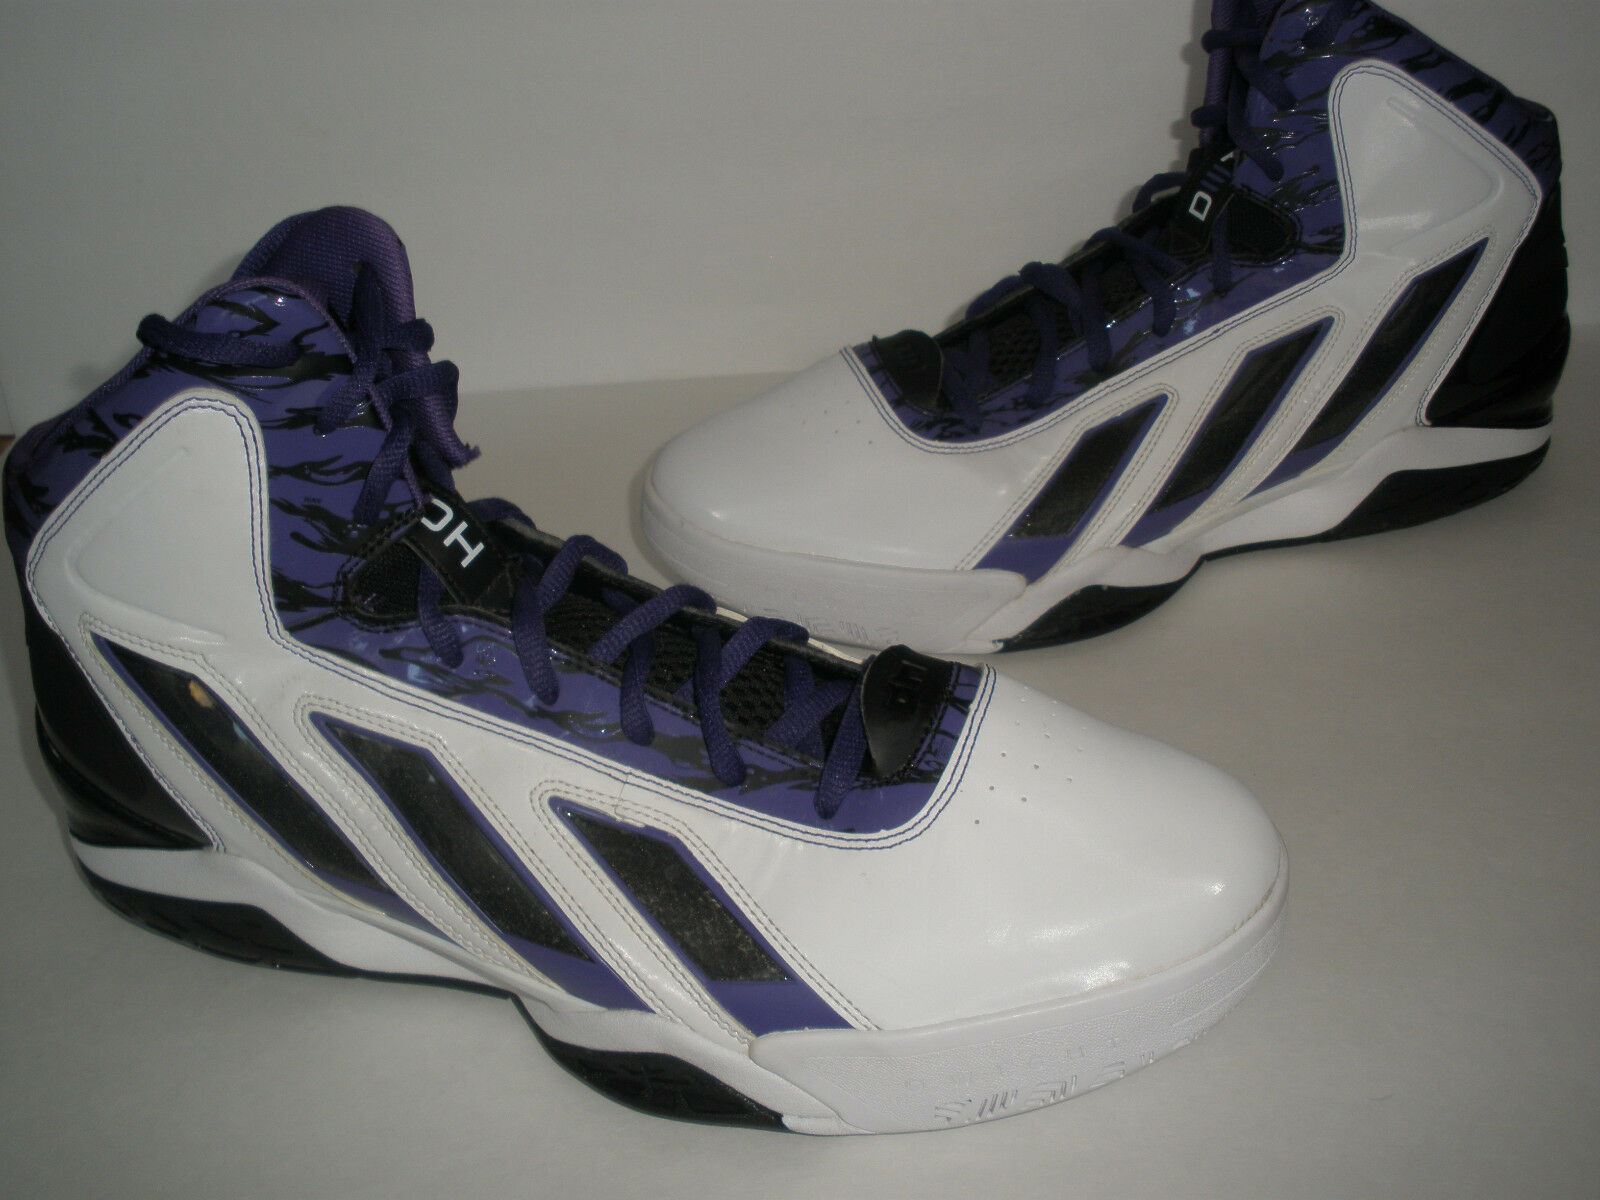 ADIDAS Adipower  HOWARD DWIGHT 3 BASKETBALL SHOES US 17 RARE HOT New shoes for men and women, limited time discount